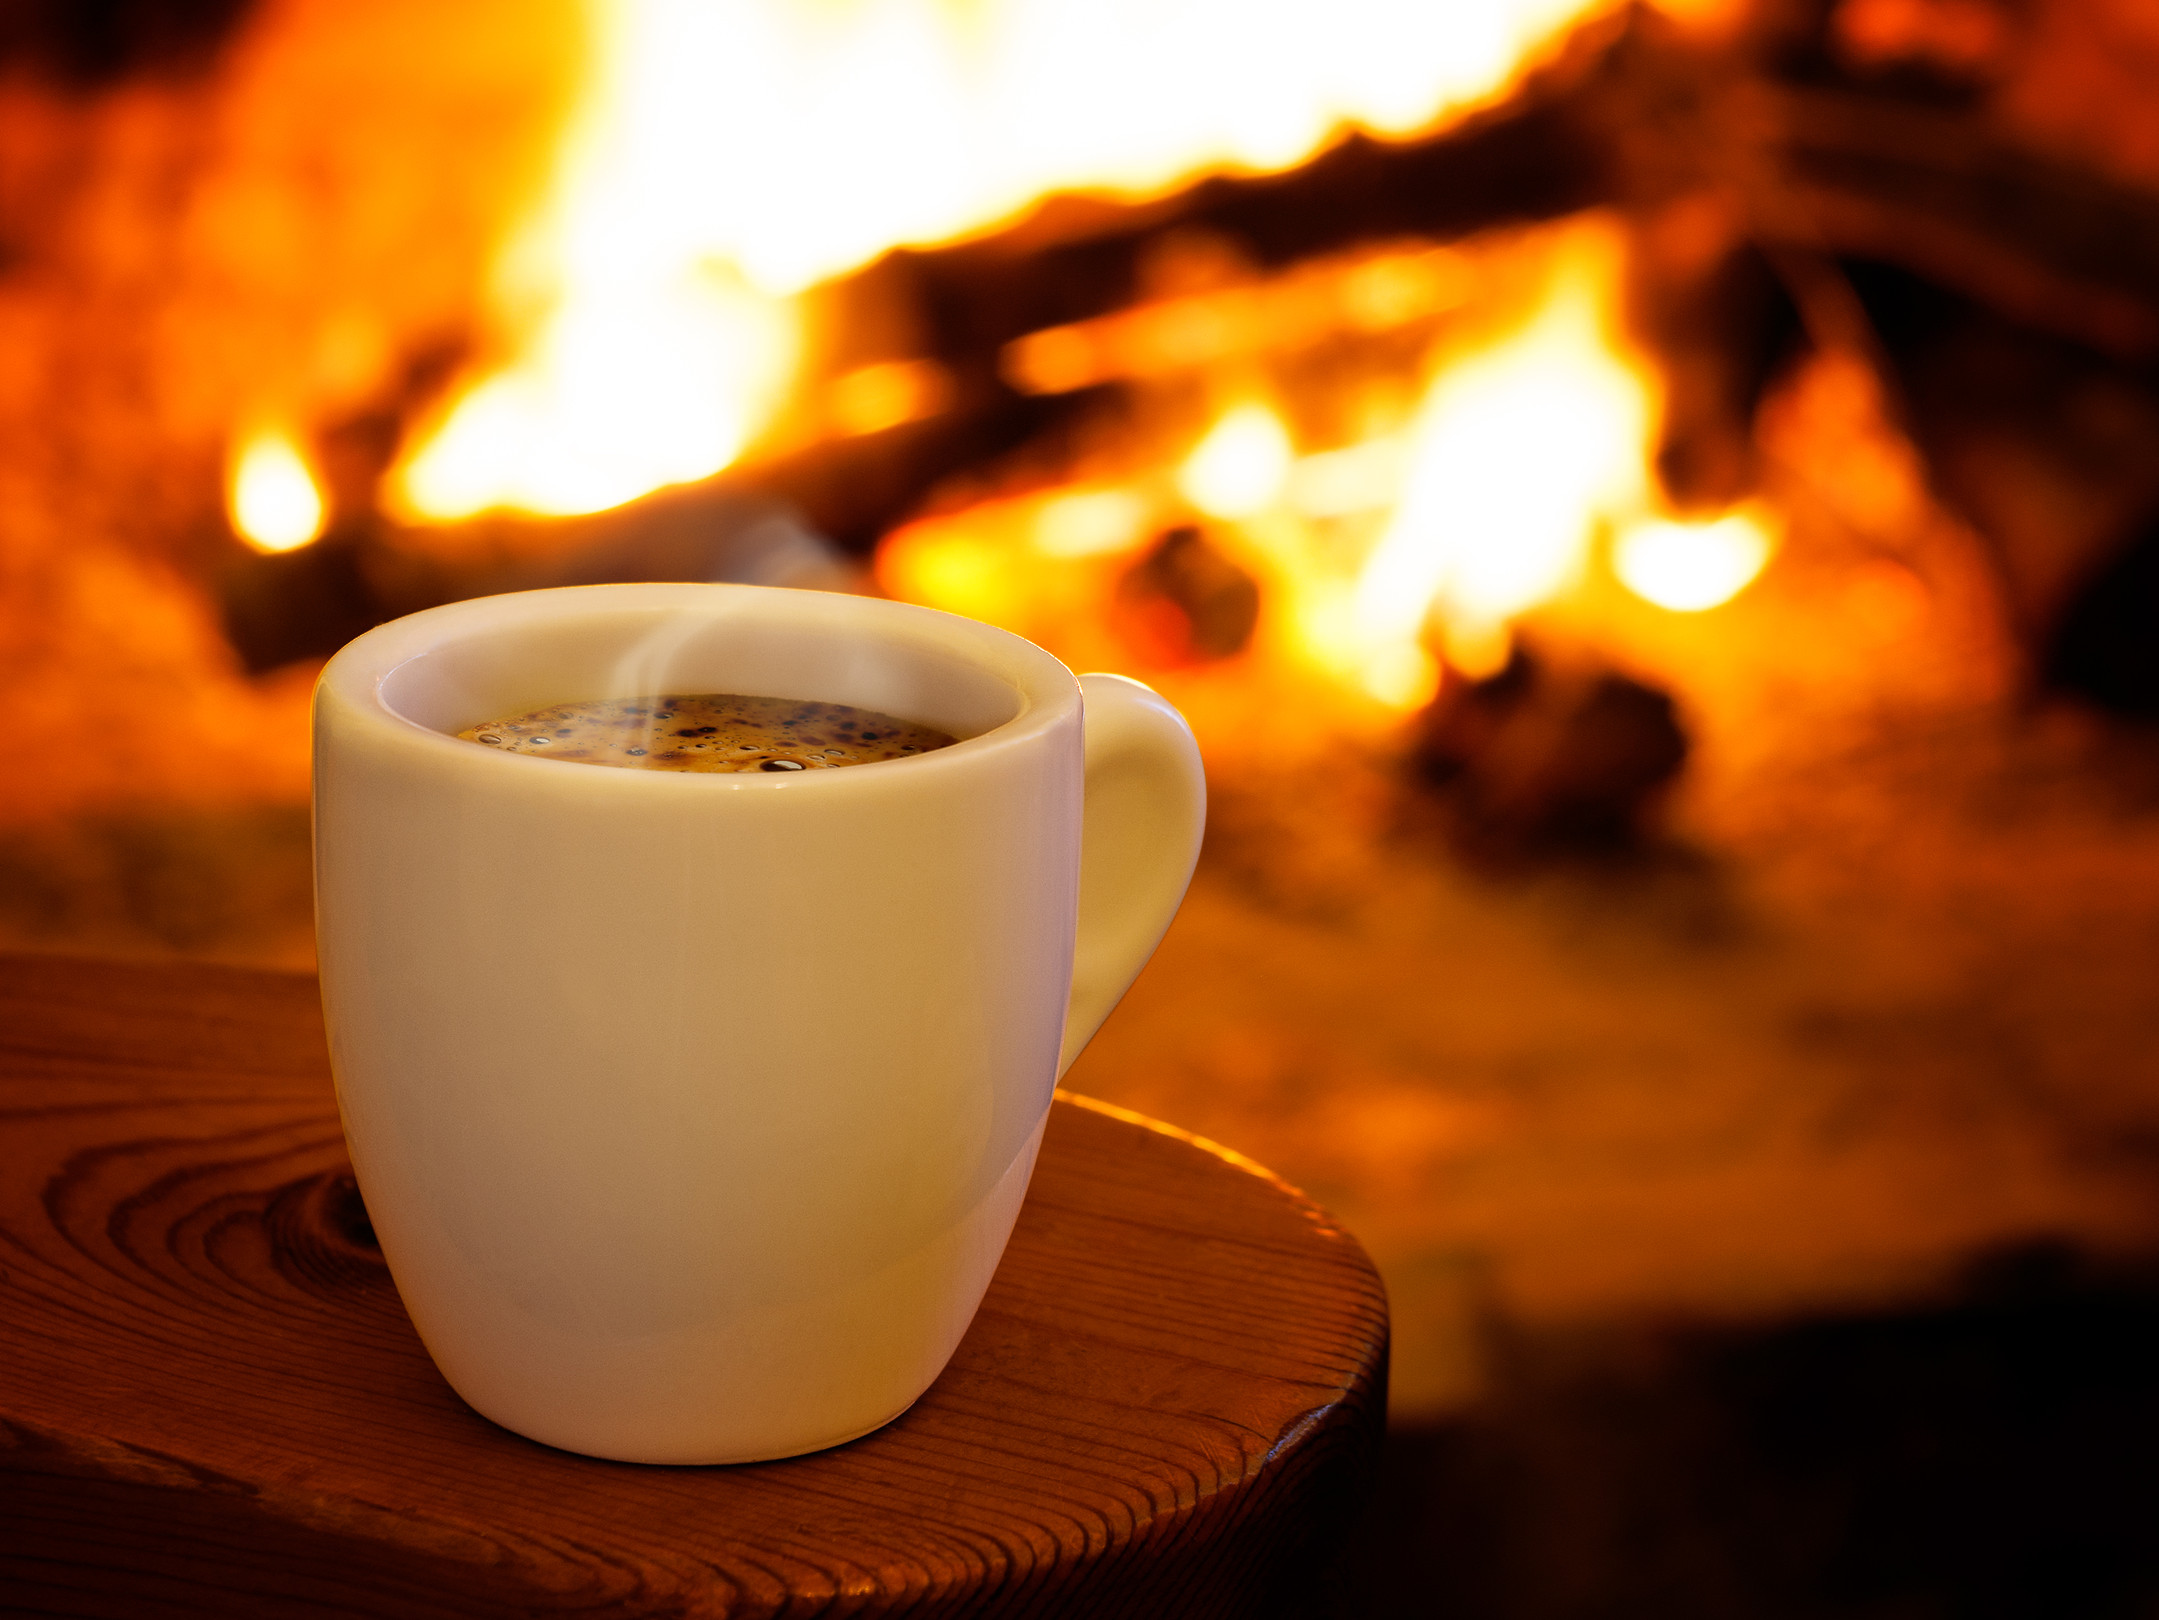 Coffee Fireplace